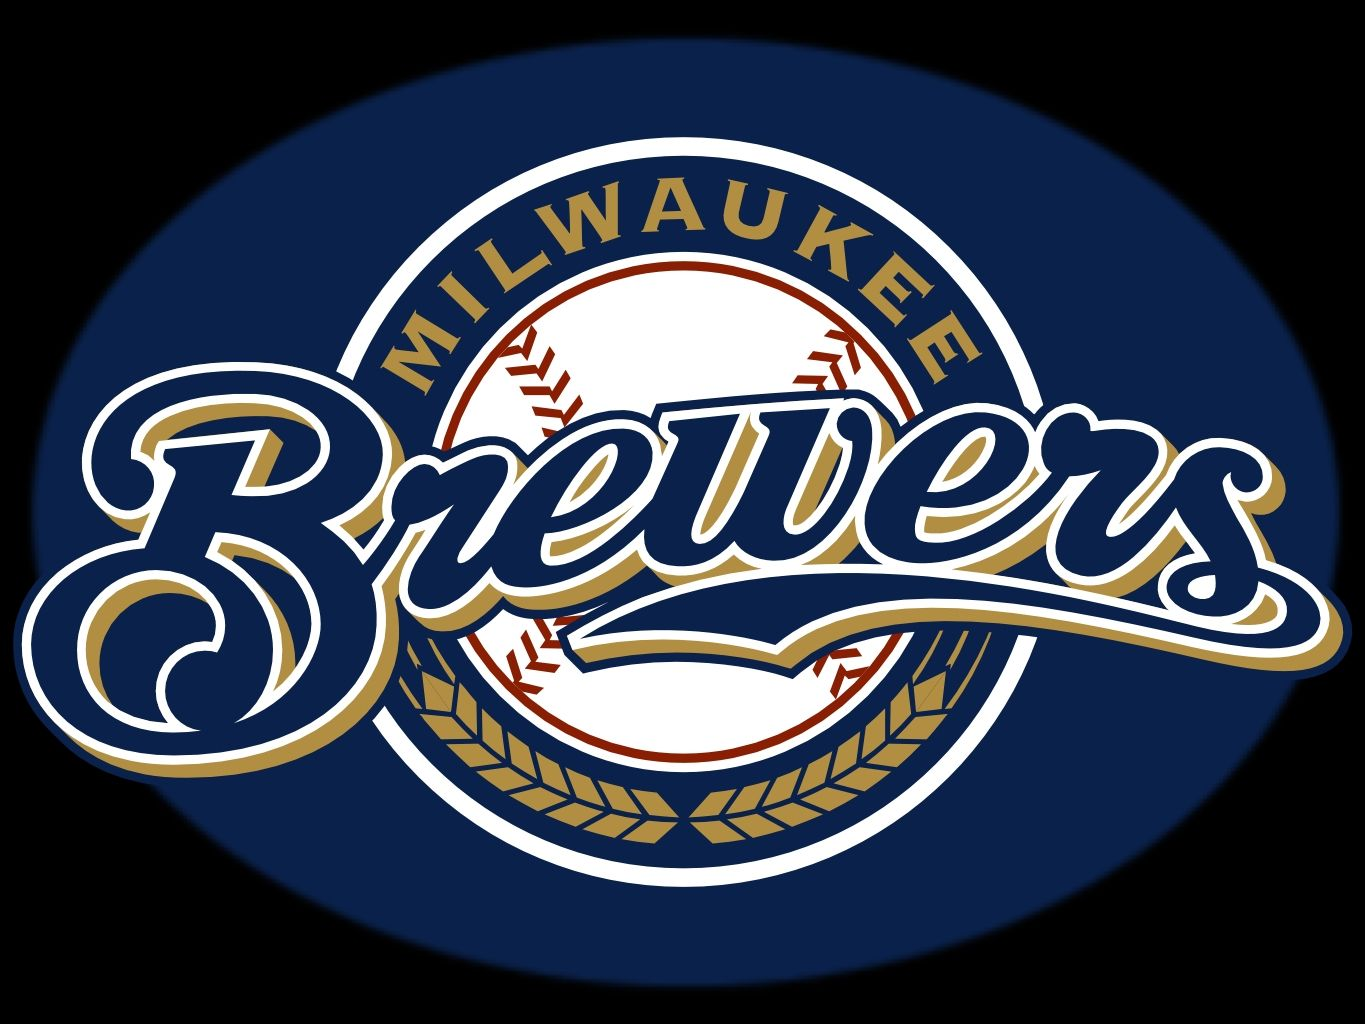 Milwaukee Brewers Logo Milwaukee Brewers Milwaukee Brewers Baseball Mlb Team Logos Brewers Baseball